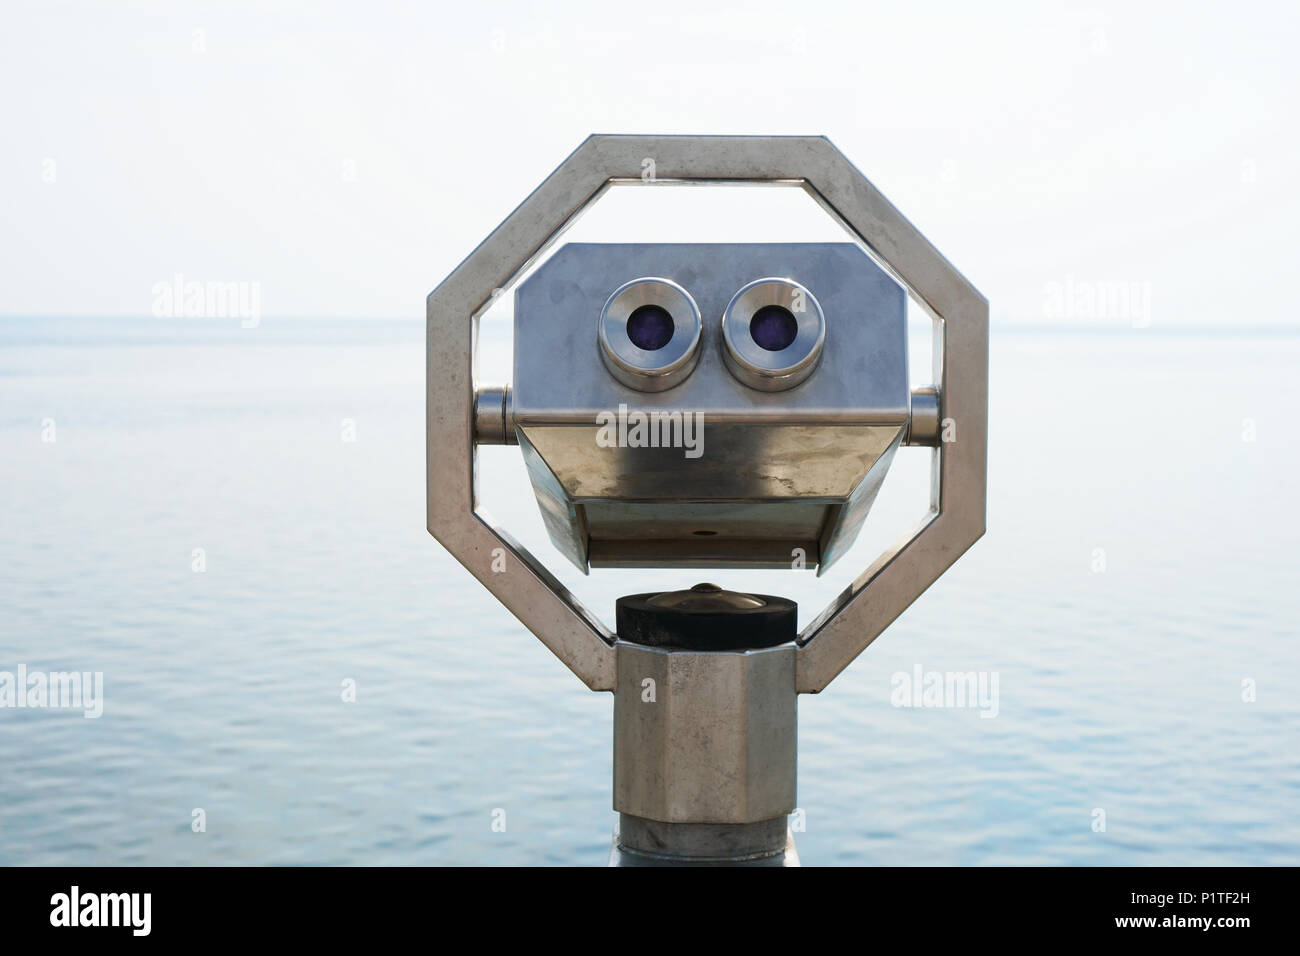 seaside overlook with coin-operated binoculars, travel vacation and observation concept - Stock Image